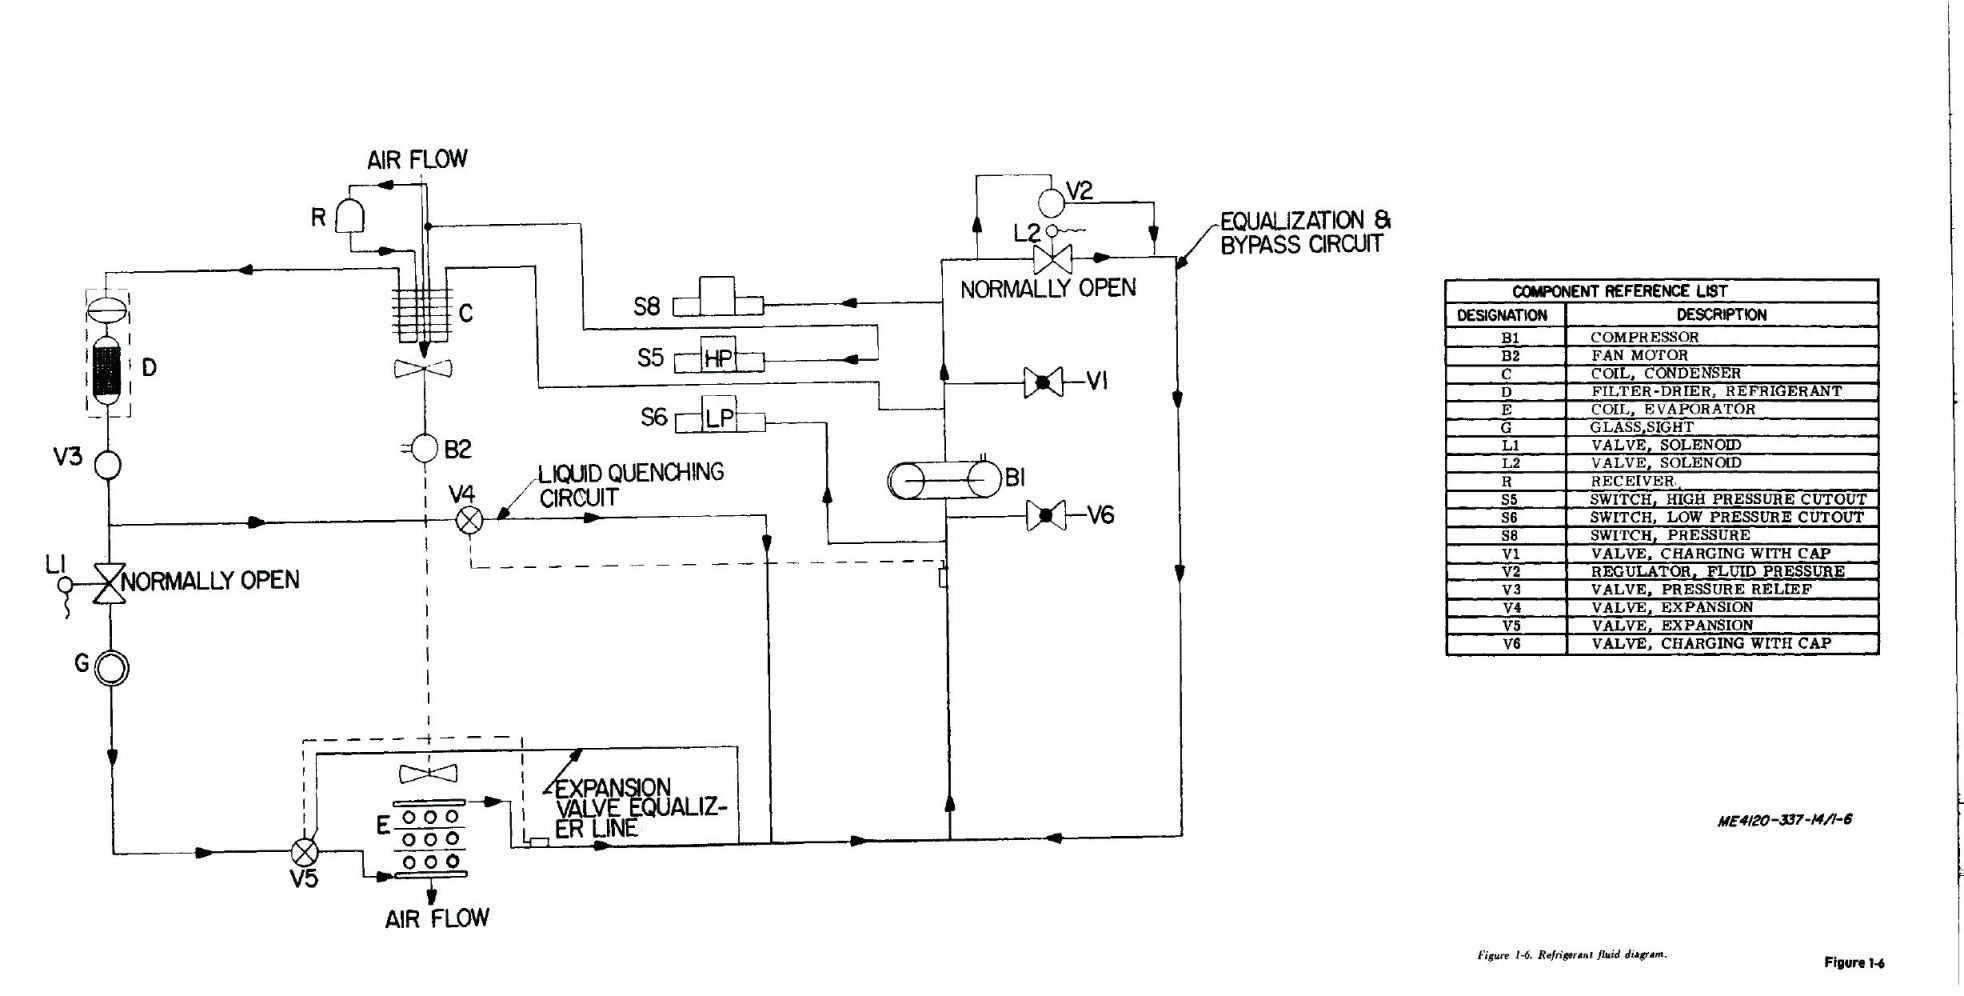 Unique Hvac Wiring Diagrams Download Hvac Electrical Wiring Diagrams Auto Air Conditioning Wiring Diagram fs3